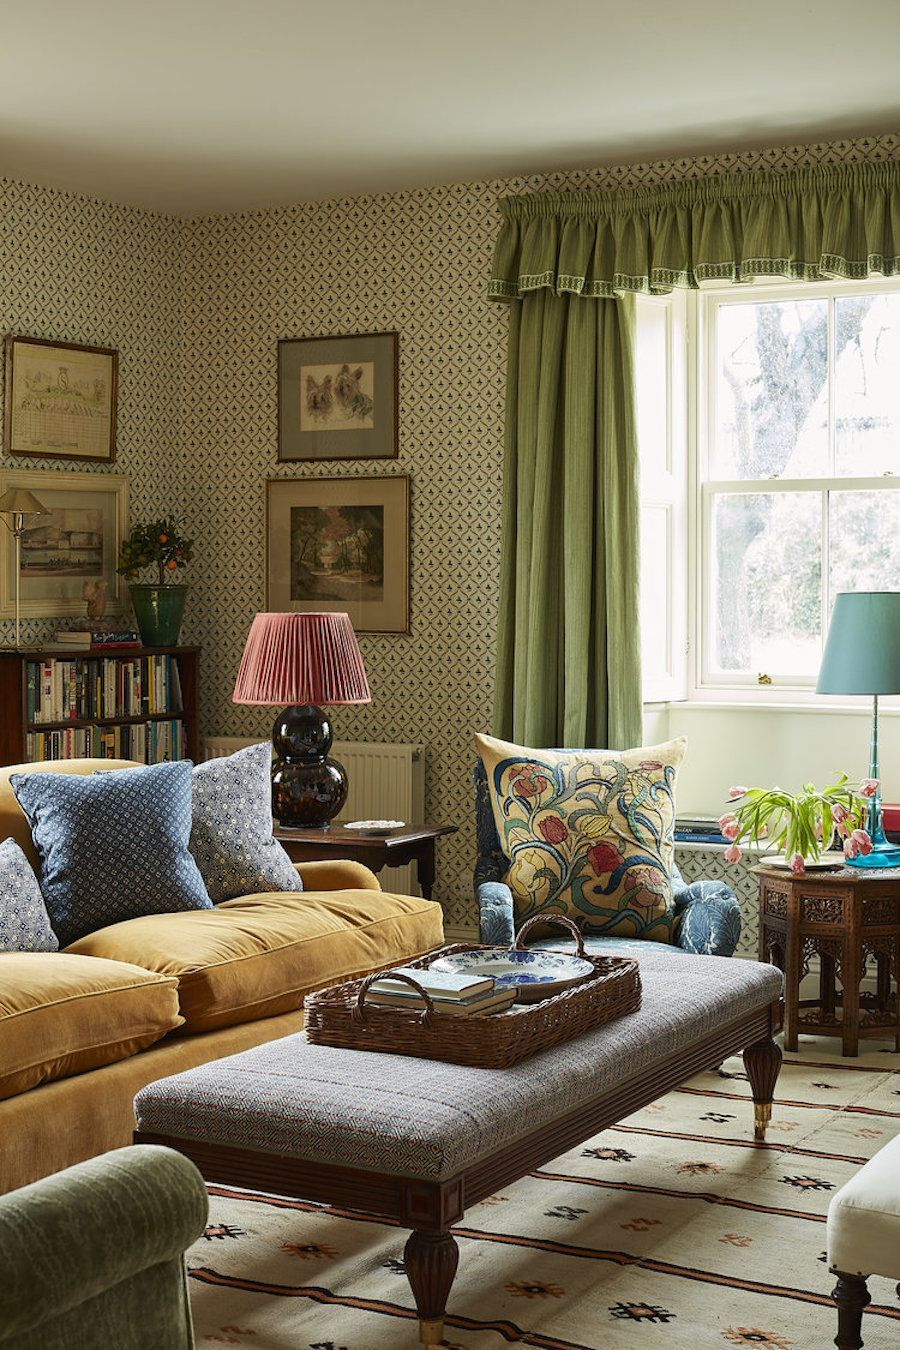 10 Fantastic English Country Living Rooms You Must See In 2021 English Country Living Room Country Living Room Farm House Living Room